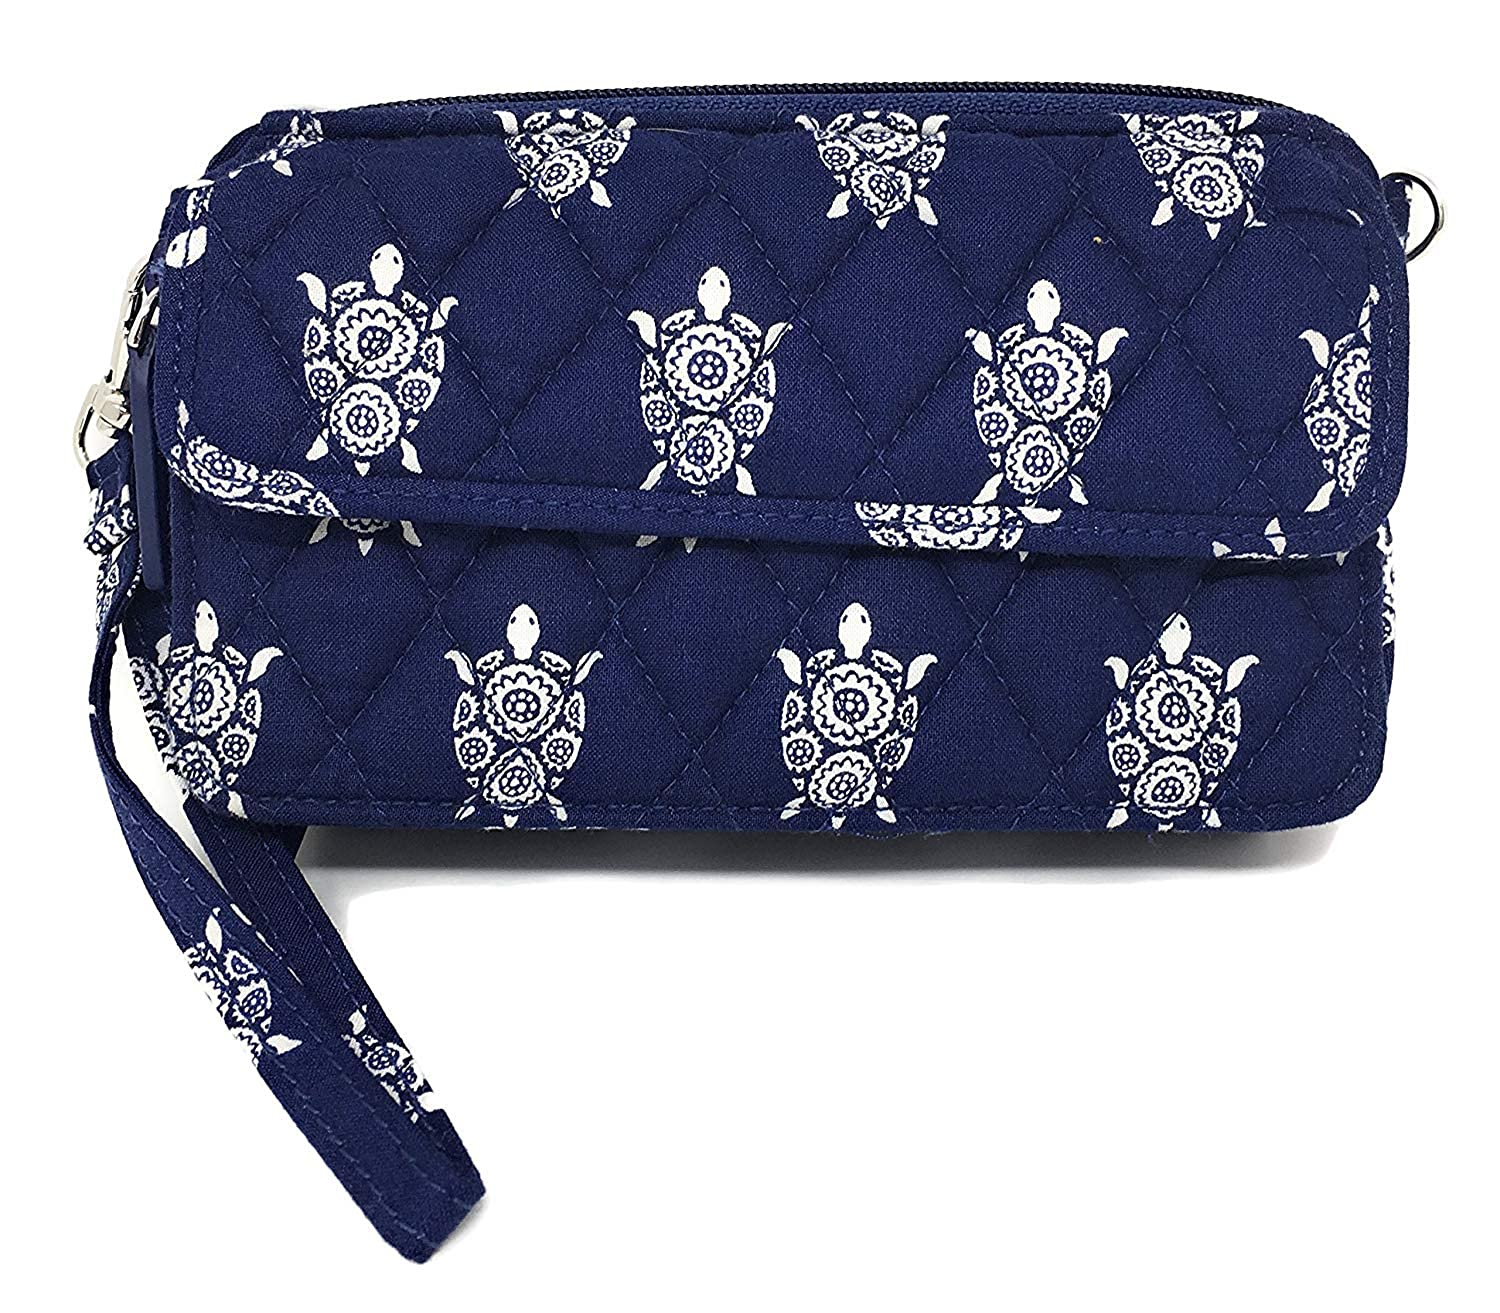 新作 Vera Bradley ACCESSORY With レディース Interiors B07B421GHX One Size|Sea Turtles Sea With Navy Interiors Sea Turtles With Navy Interiors One Size, DEPOS(デポス):26475980 --- egreensolutions.ca